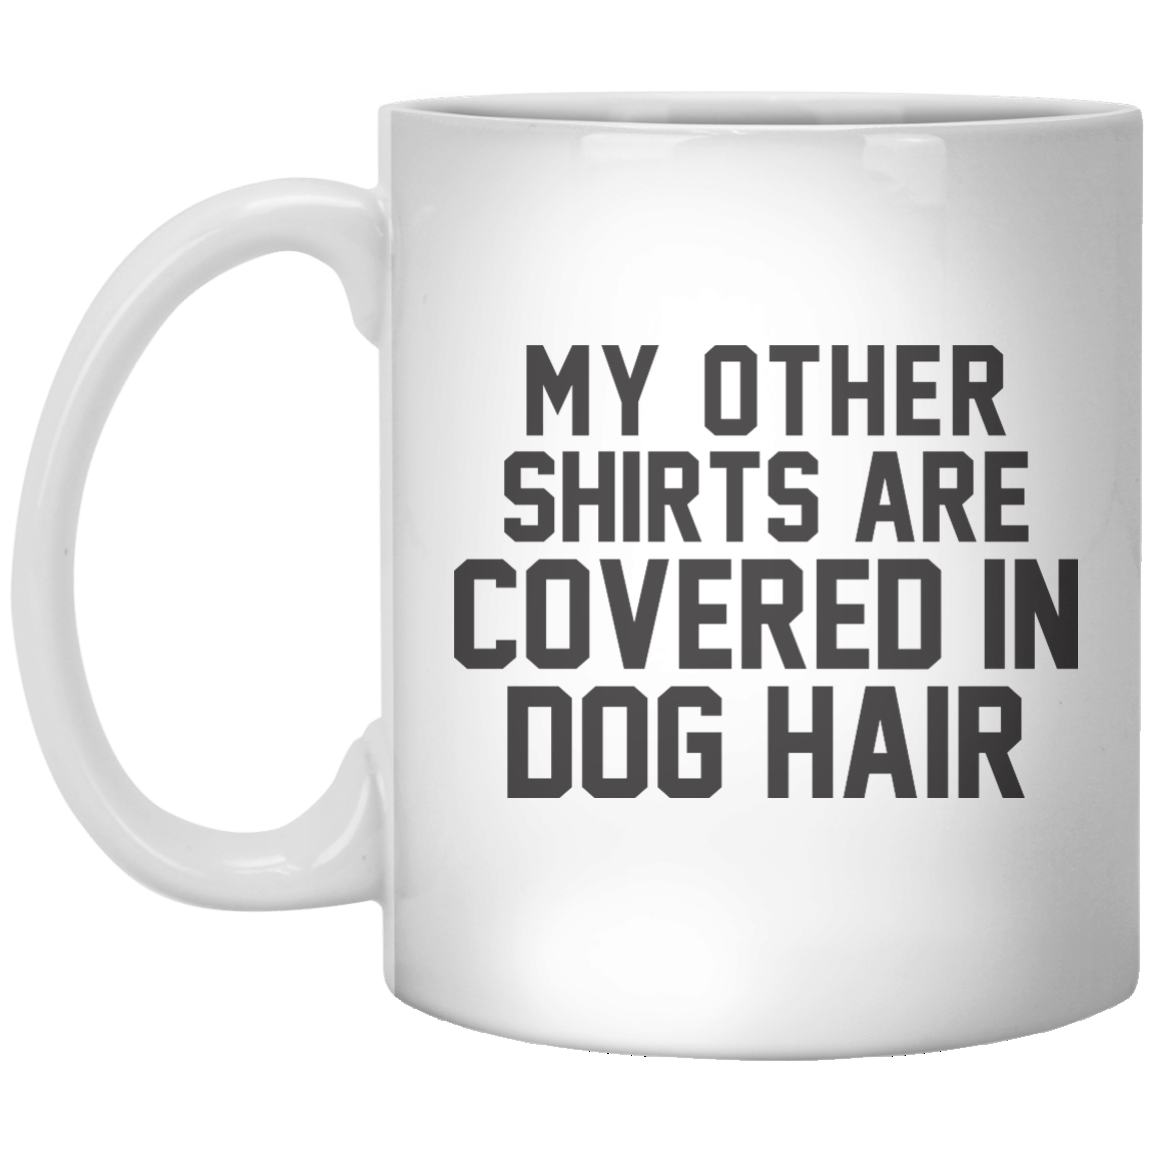 My Other Shirts Are Convers in Dog Hair MUG - Shirtoopia